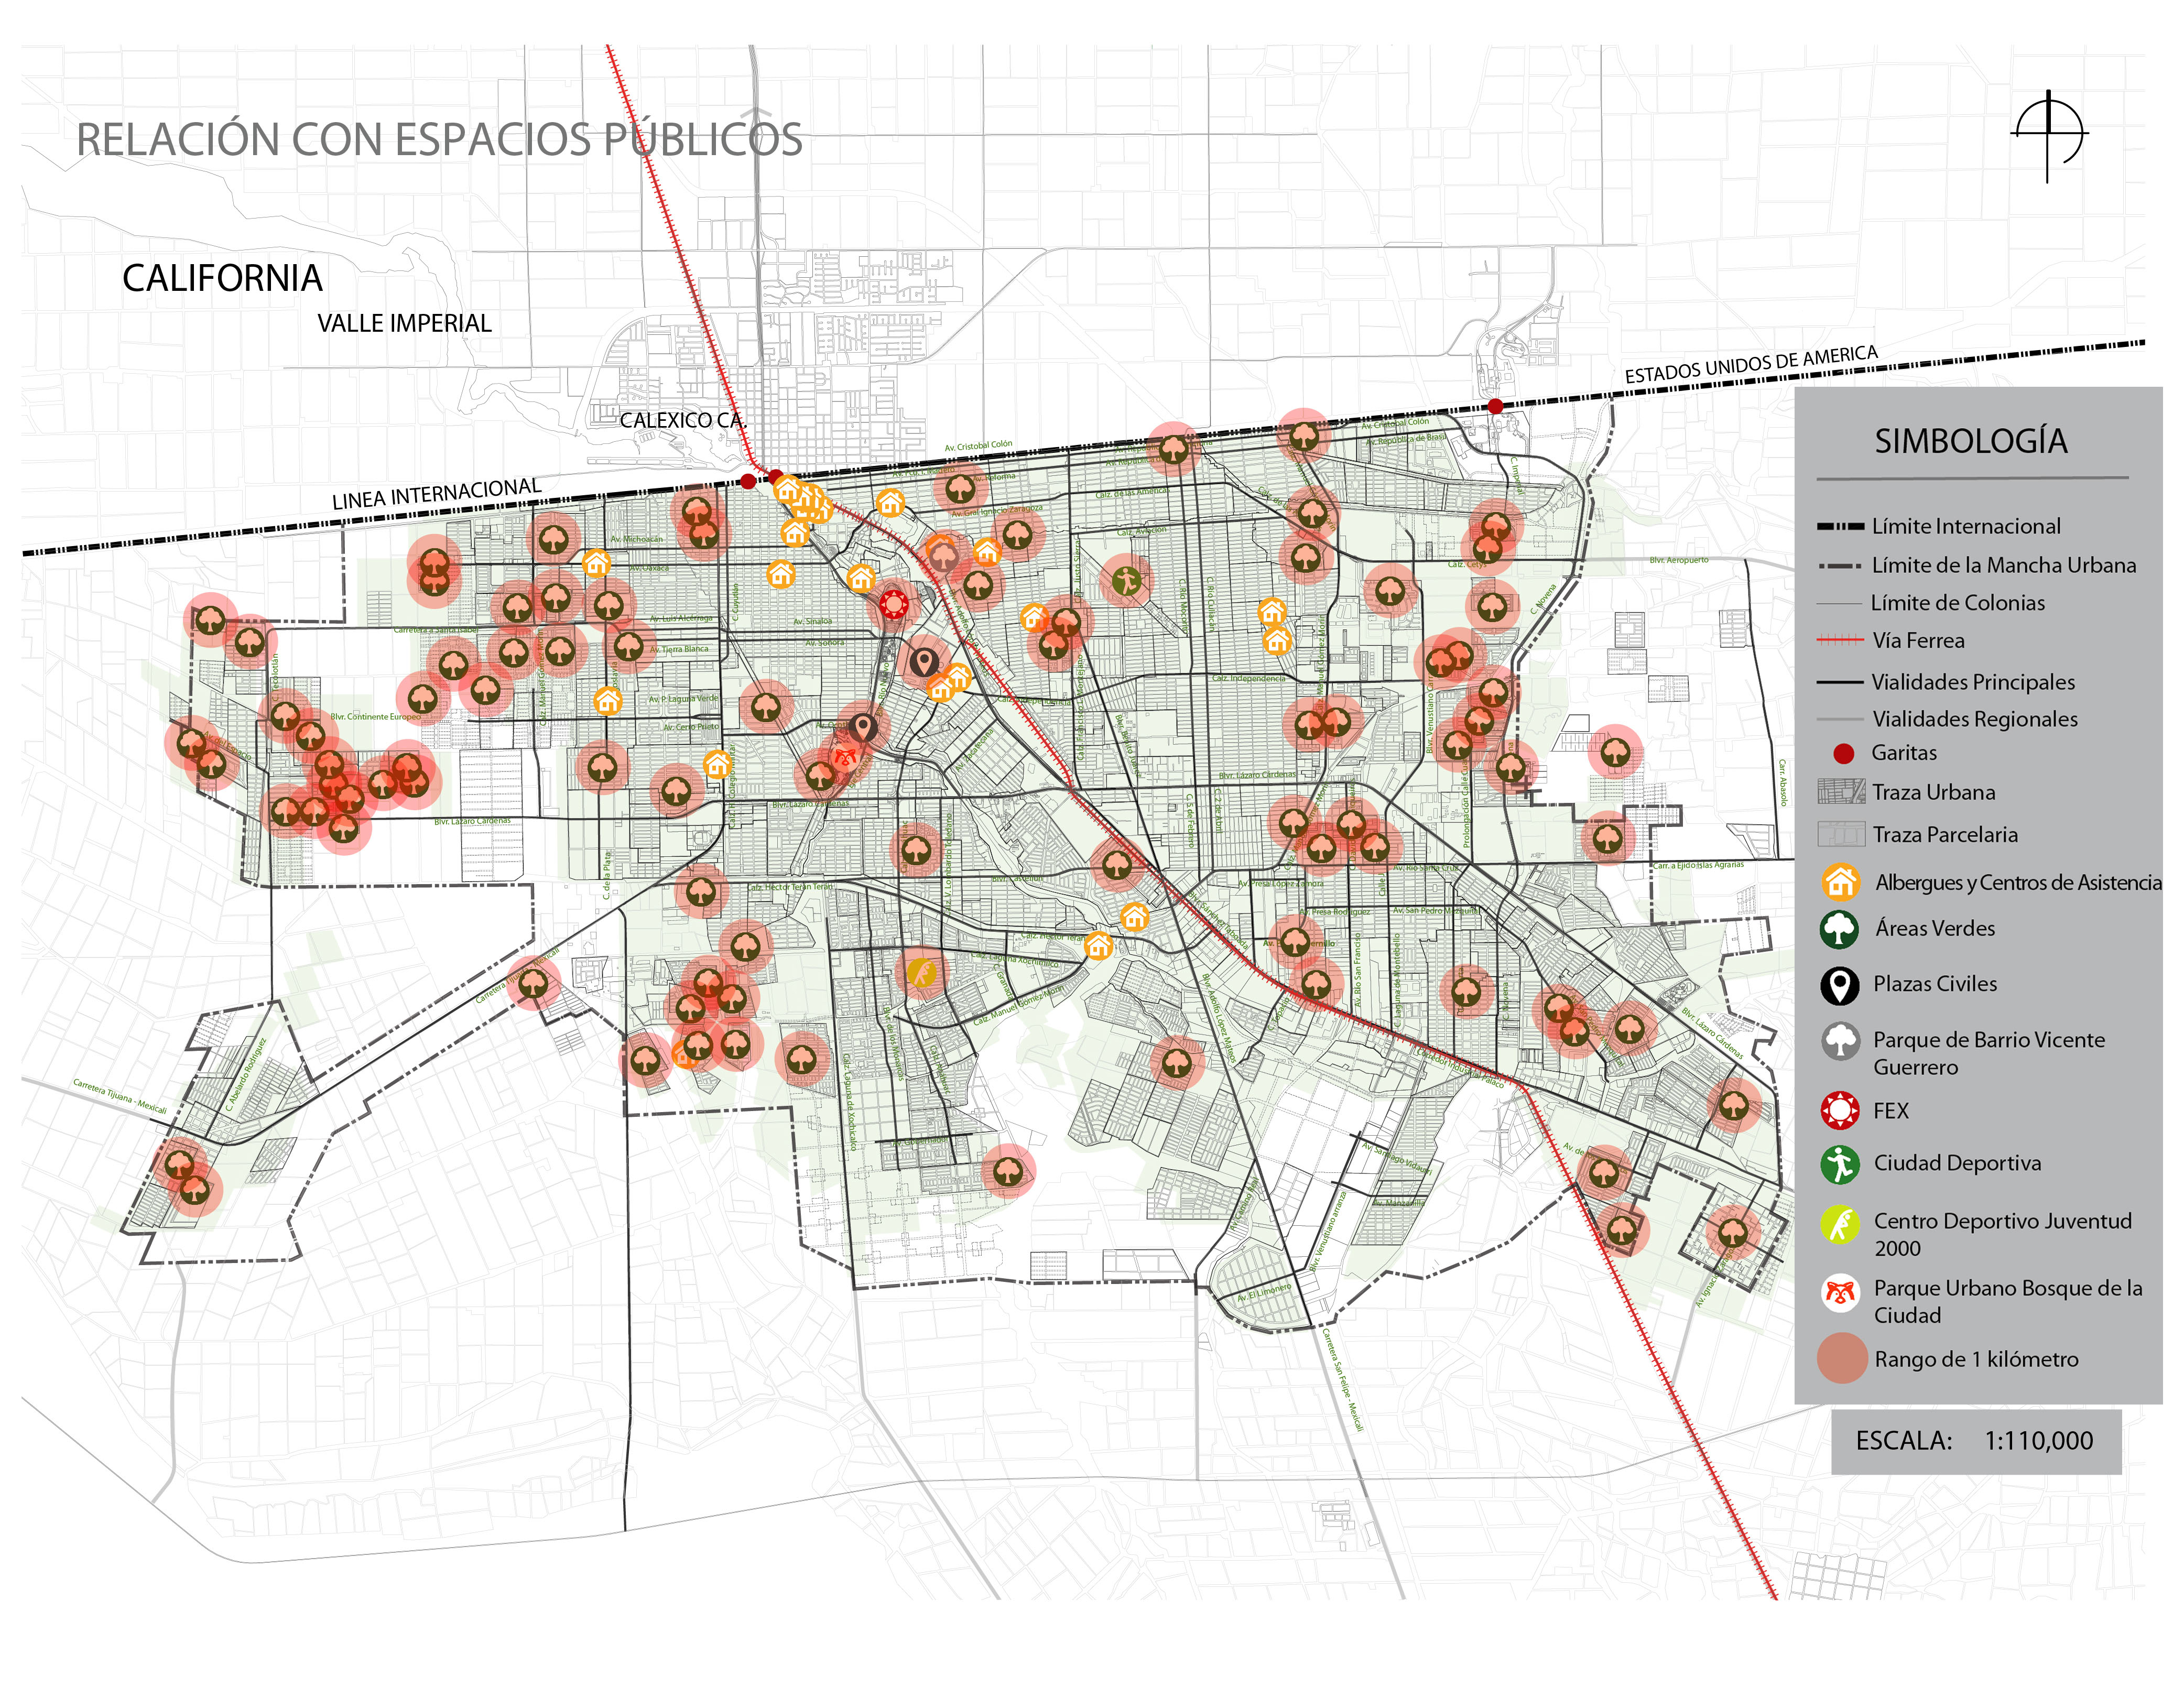 Relationship between the equipment aimed at the migrant population and the recreational spaces in the city of Mexicali. Source: own authorship, 2021